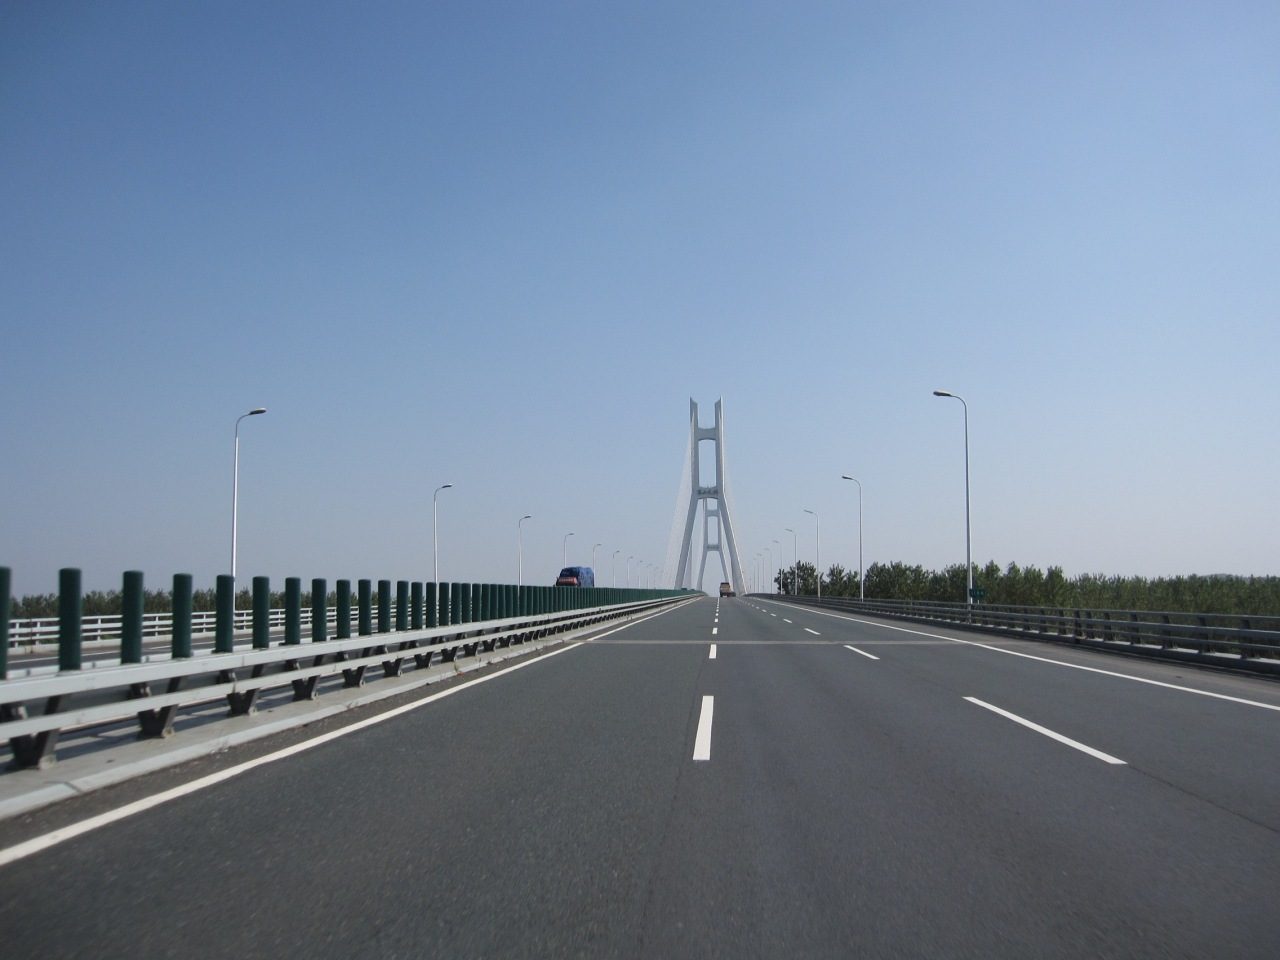 Crossing one of many bridges. Roads were relatively quiet and we made good progress passed Wuhan to Anhui